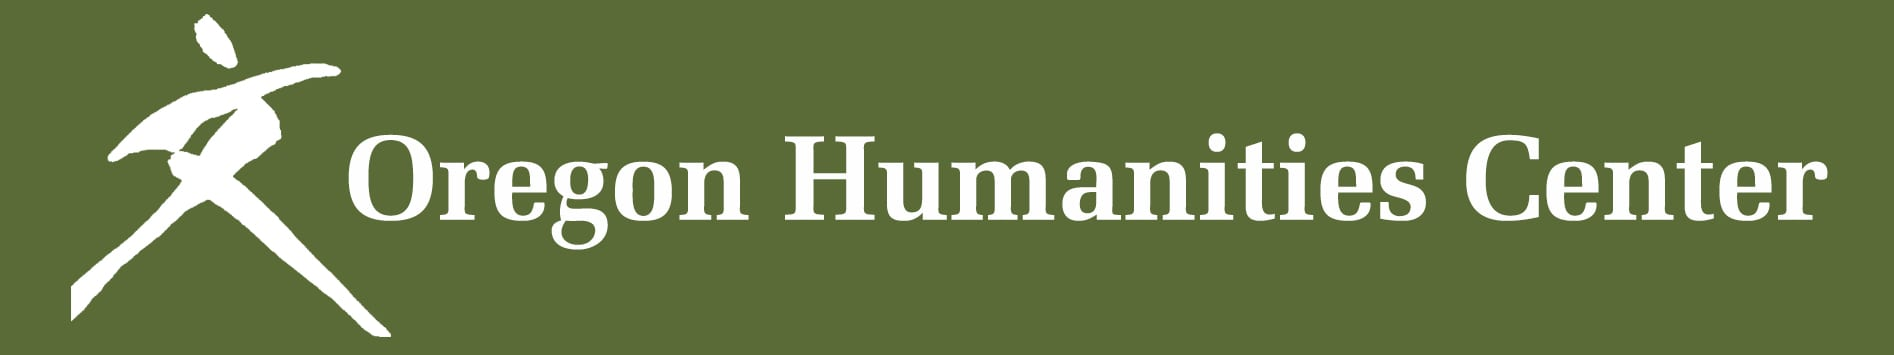 oregon humanities center dissertation fellowship